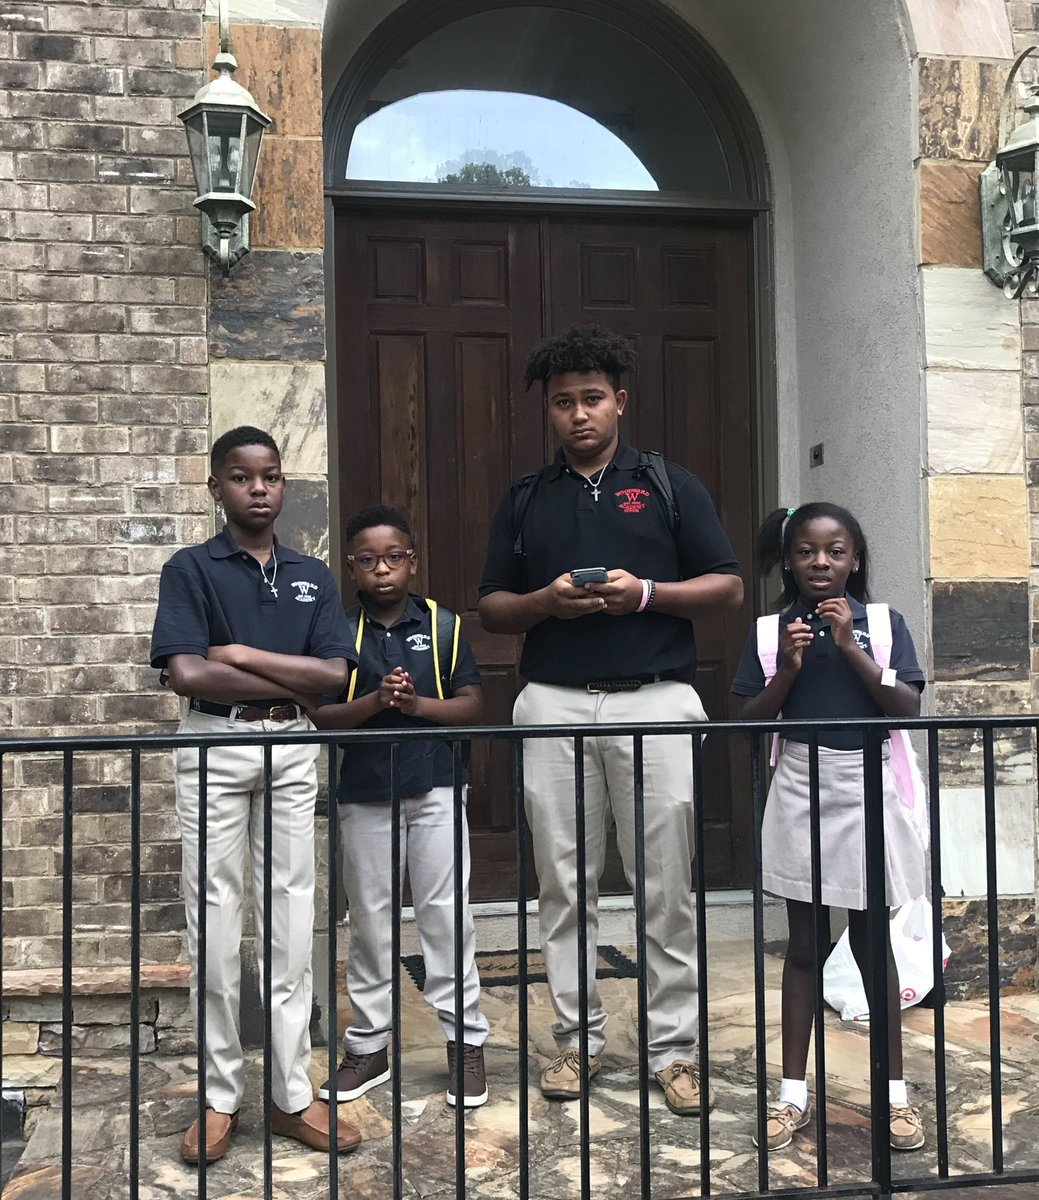 """My kids are thrilled about the first day of school, just beyond irritated that I had to take their """"lame"""" picture. Summer vacation is FINALLY over! 💃🏾😅🙏🏾"""